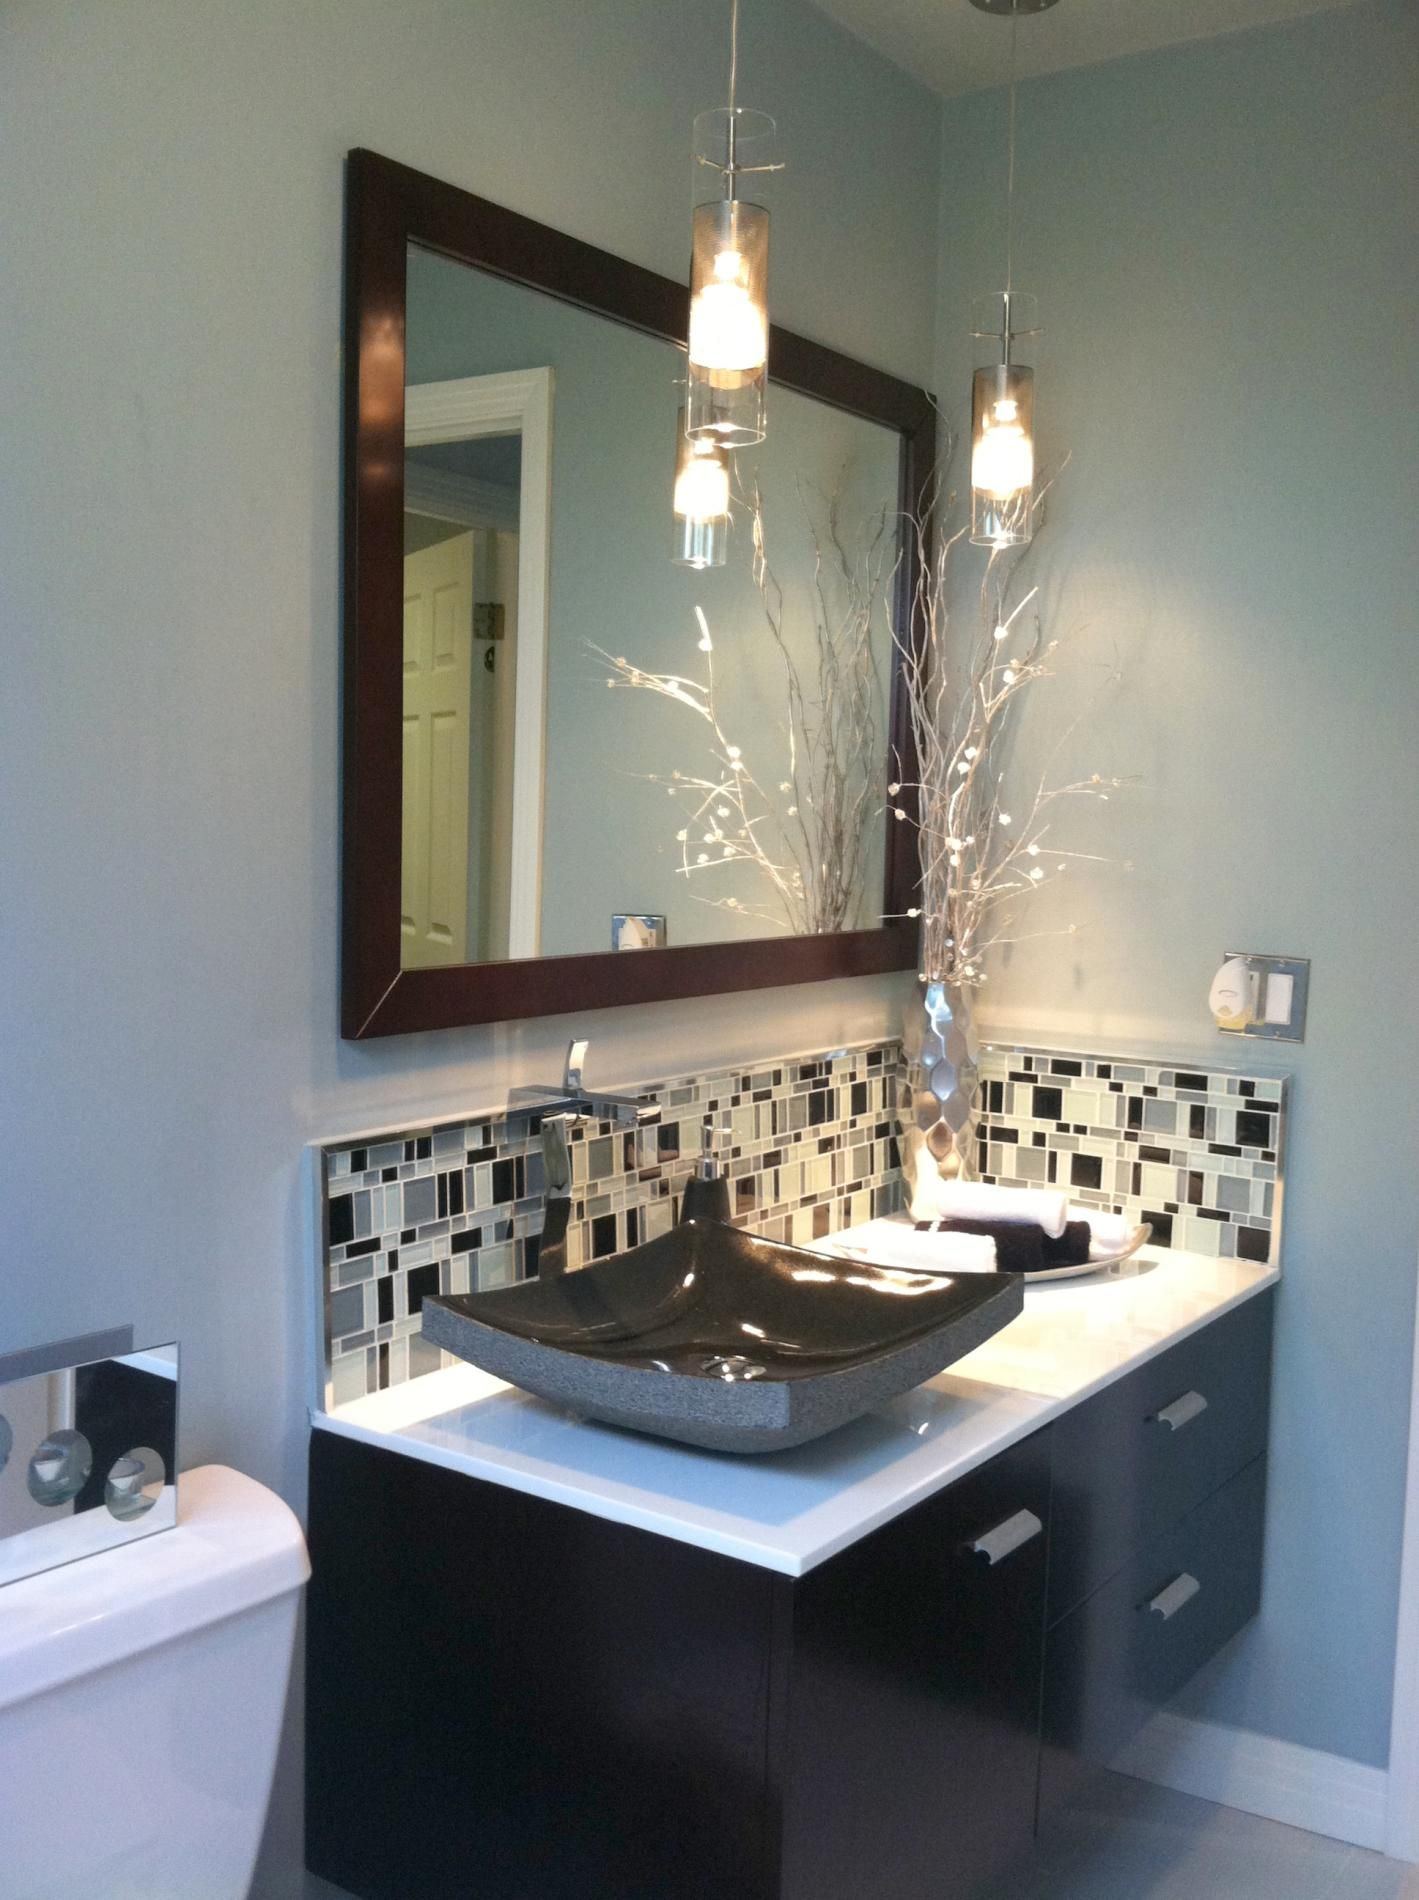 The Bathroom Pendant Lighting Is One Of The Good Ways For Best Ways To Decorate A Small Bathroom Design Ideas